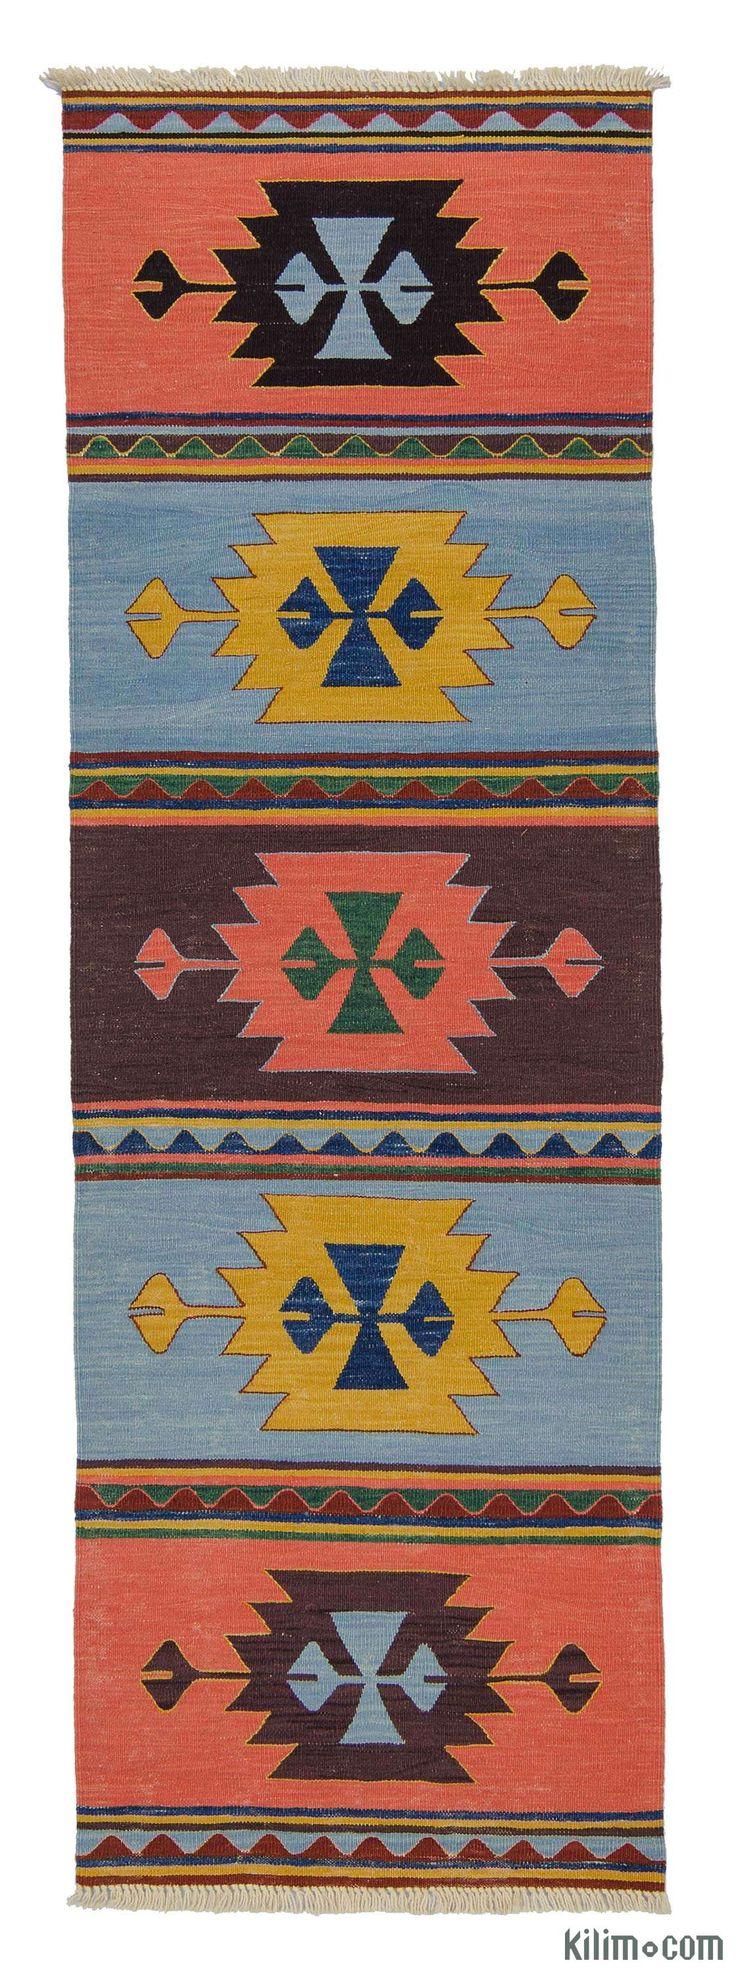 K0007972 New Turkish Kilim Runner | Kilim Rugs, Overdyed Vintage Rugs, Hand-made Turkish Rugs, Patchwork Carpets by Kilim.com